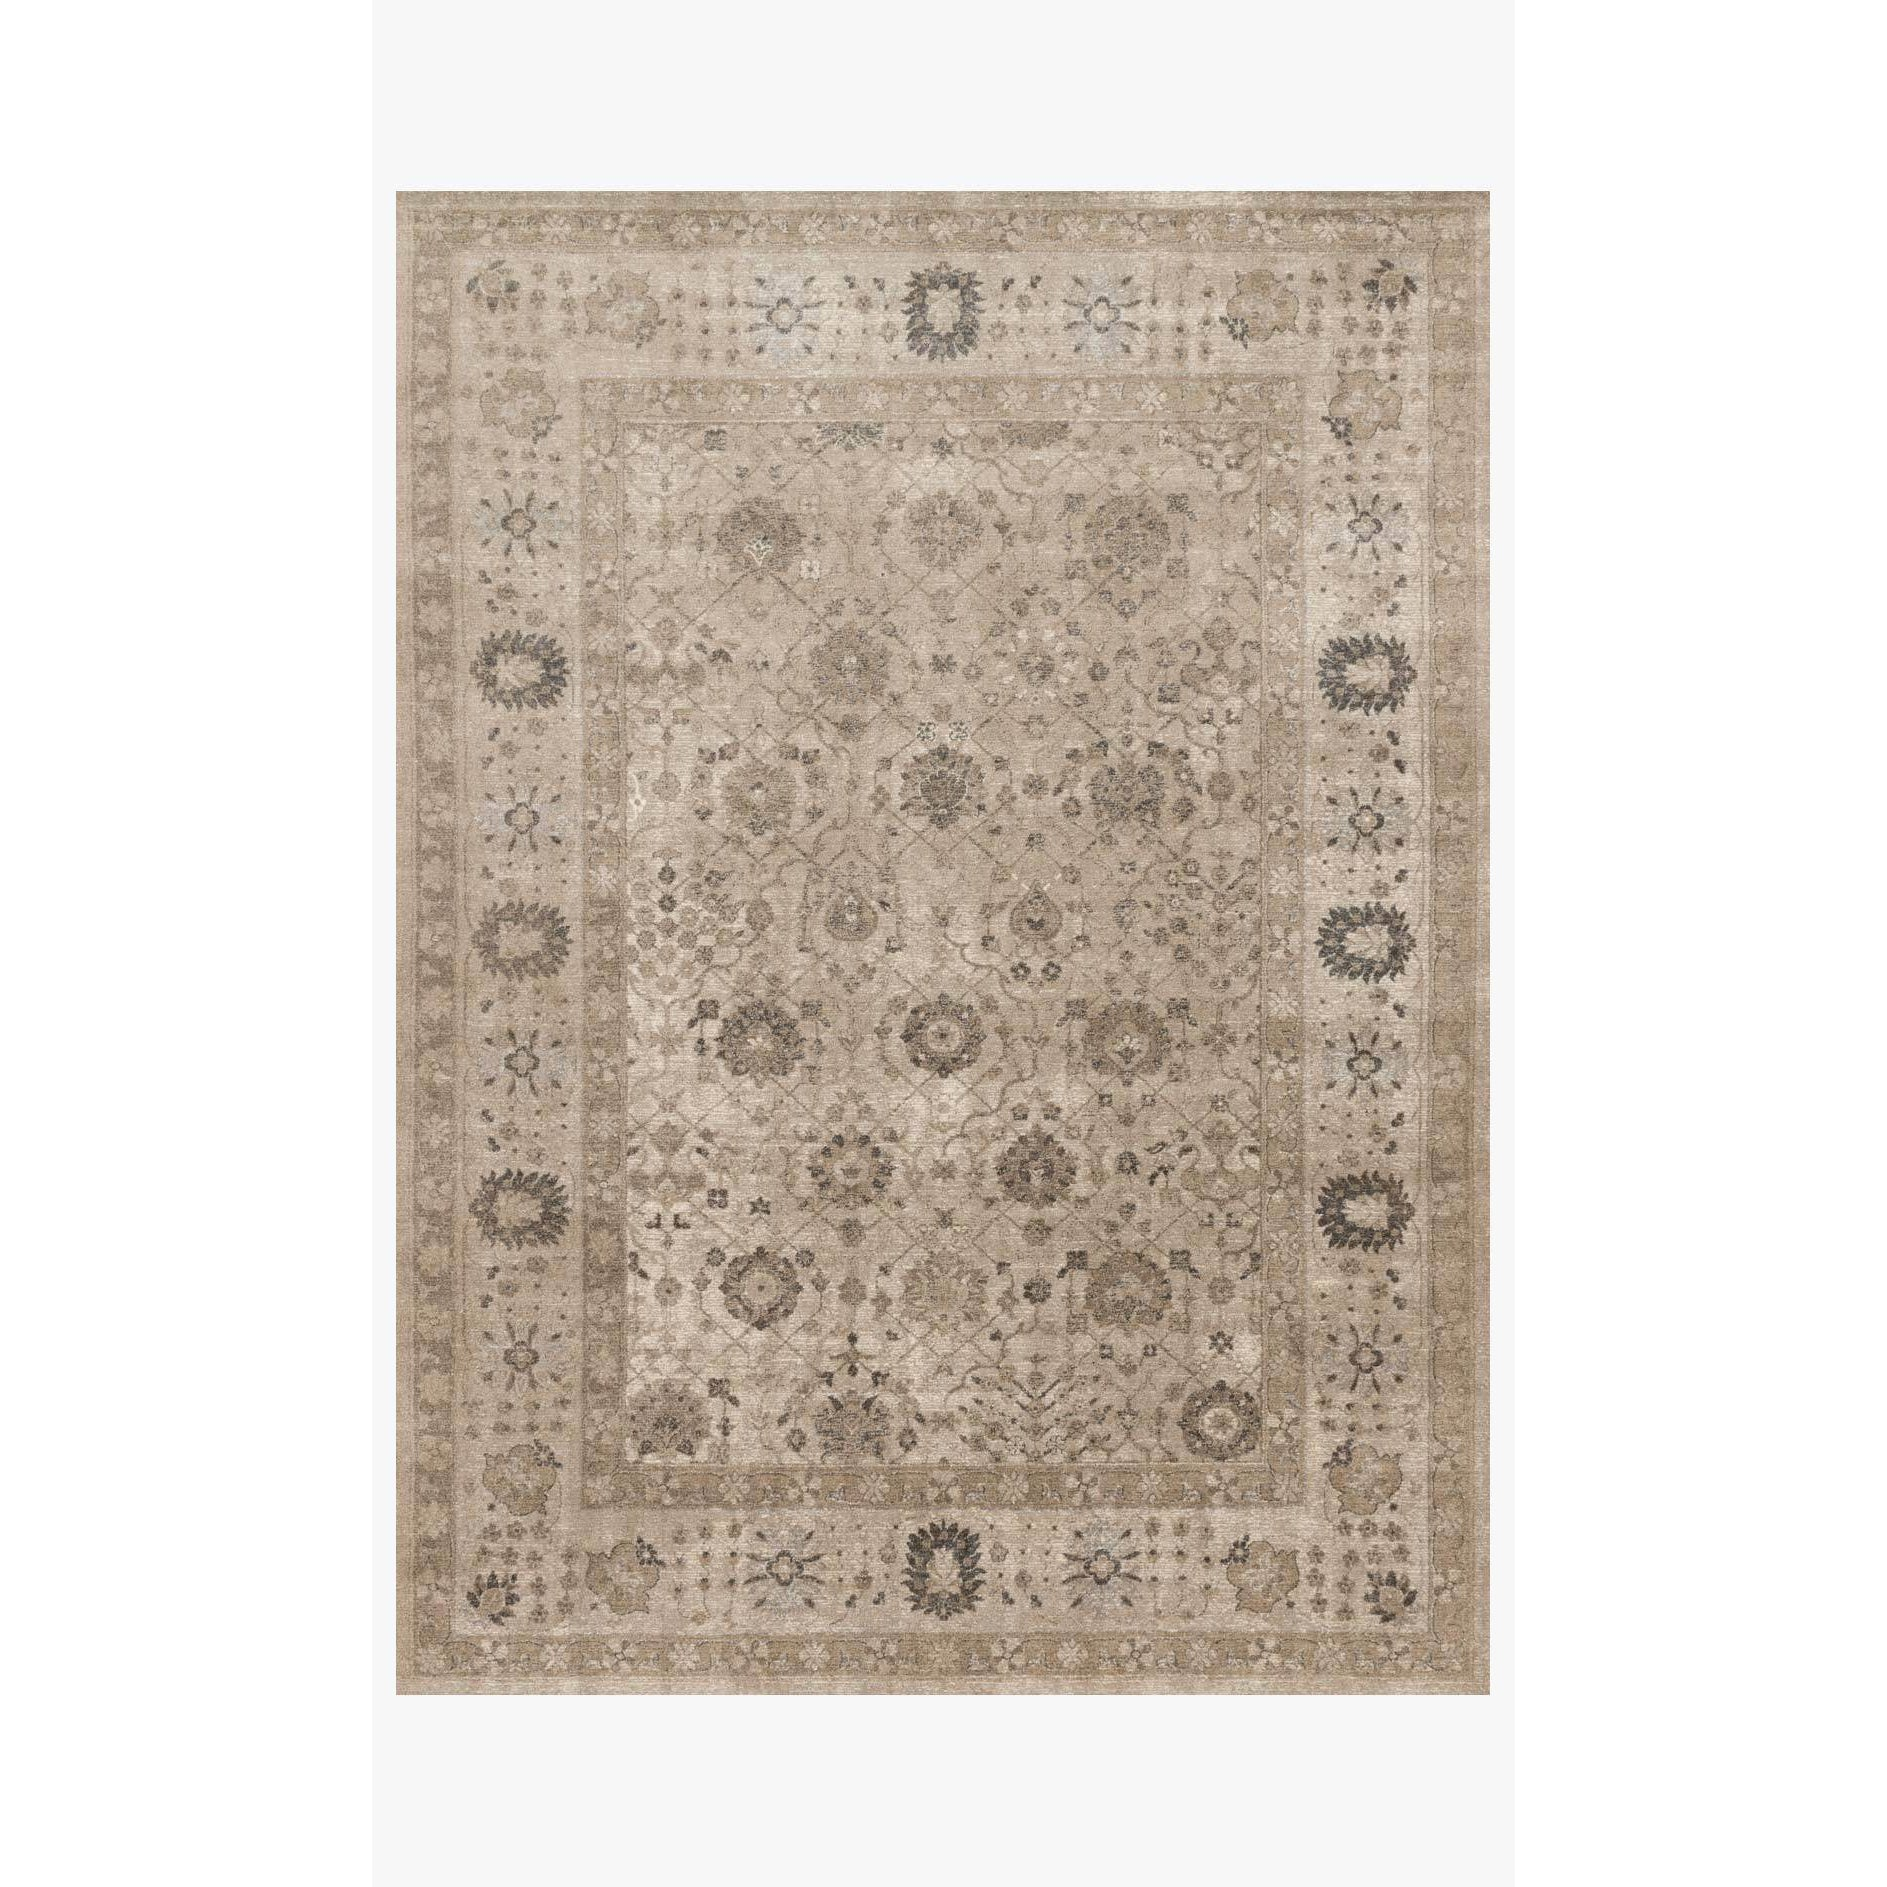 Century Rug by Loloi Rugs - CQ-02 - Taupe / Taupe